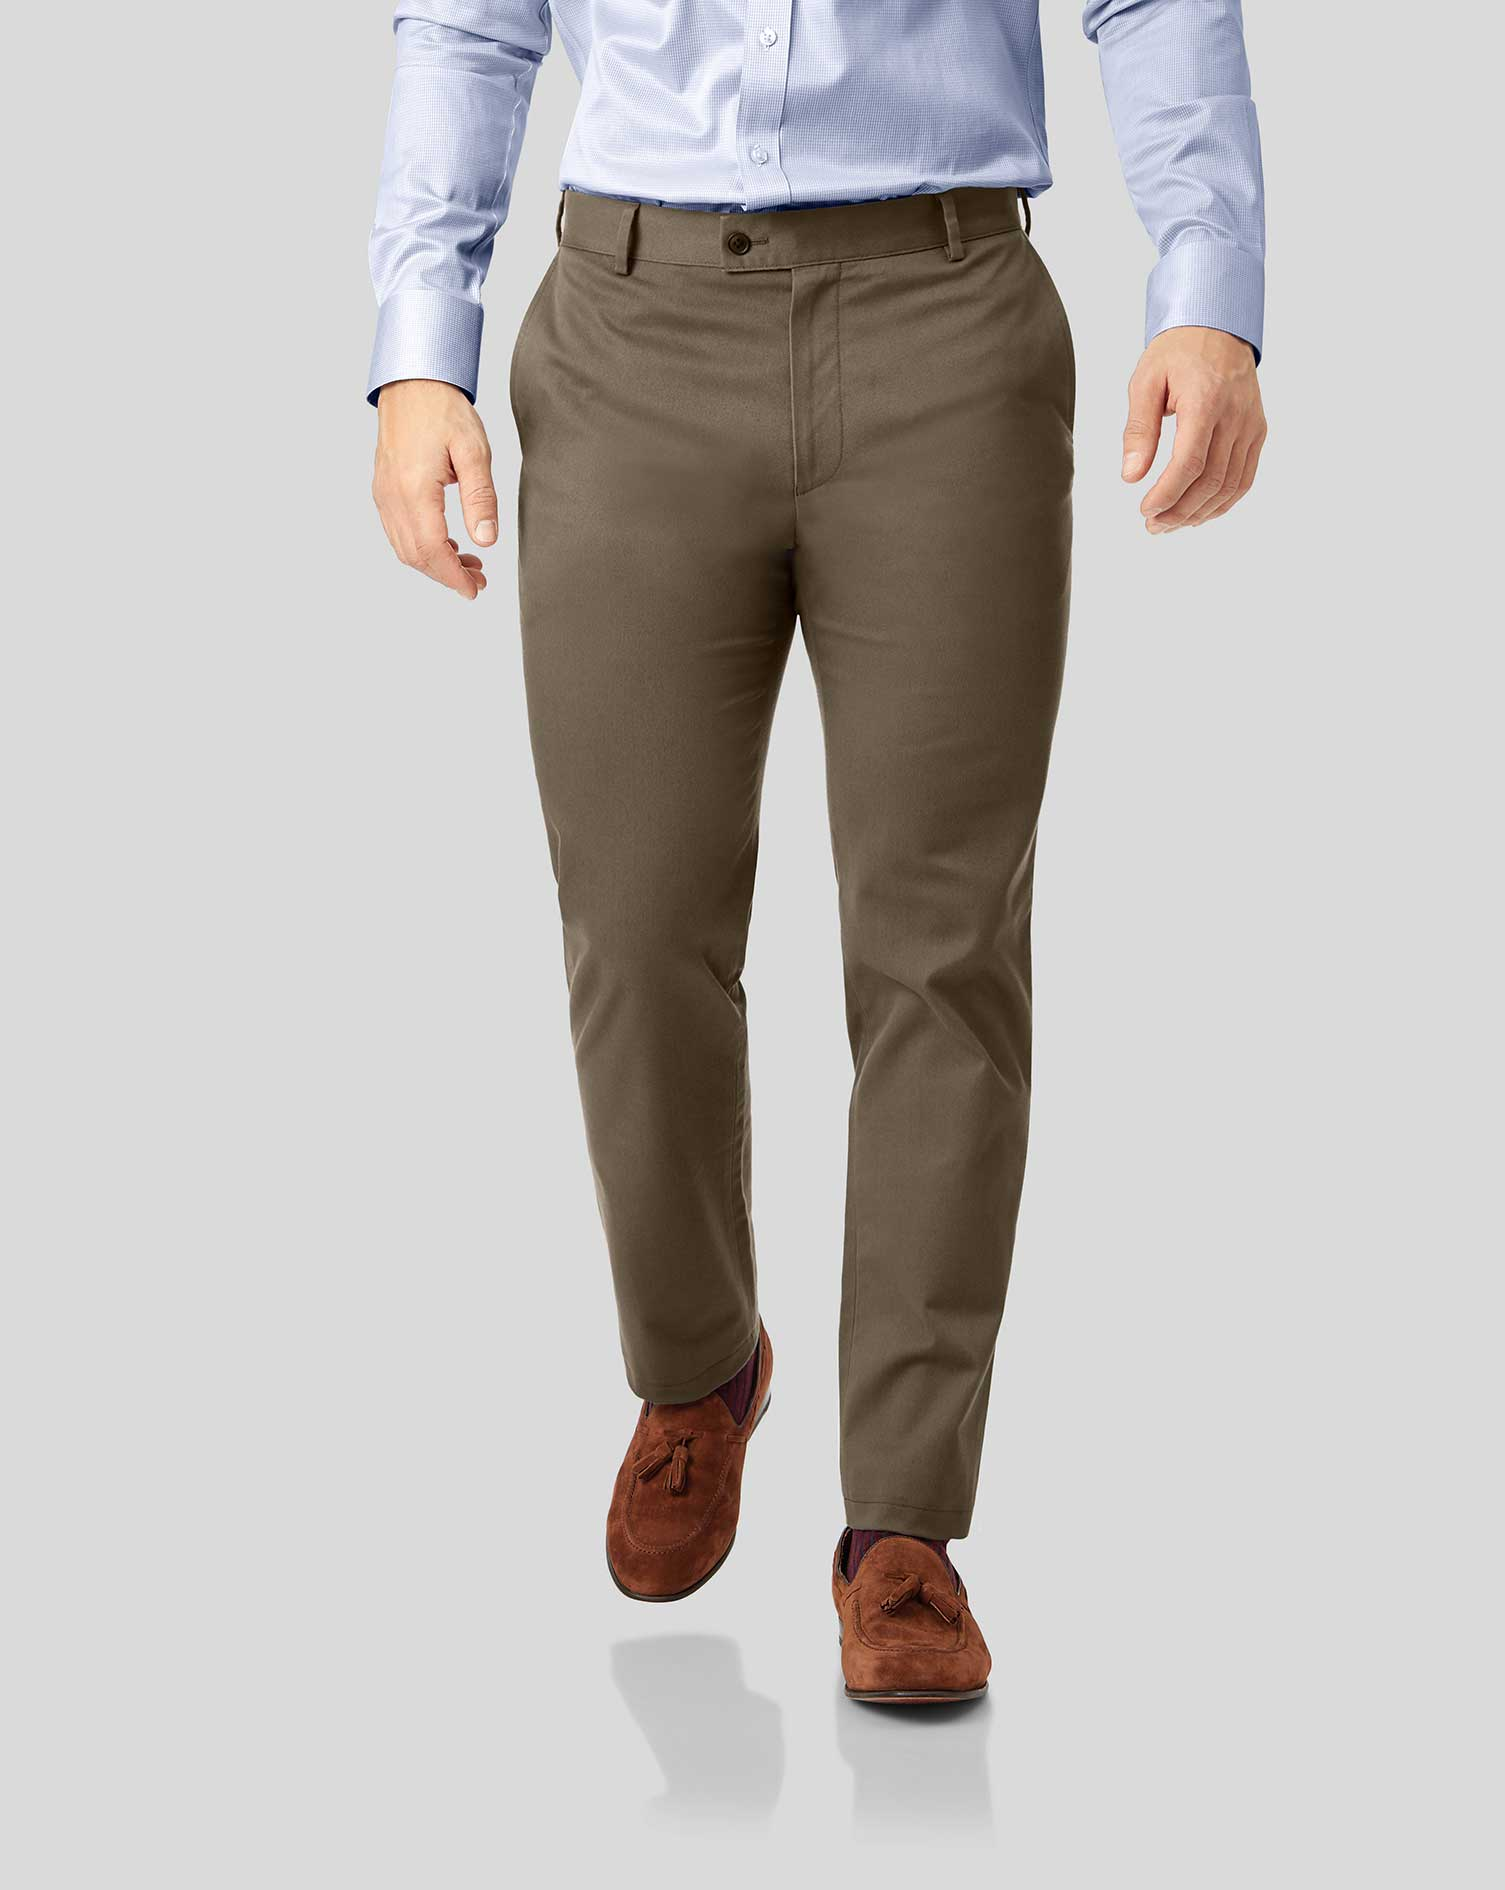 Mocha Non-Iron Ultimate Cotton Chino Trousers Size W34 L32 by Charles Tyrwhitt